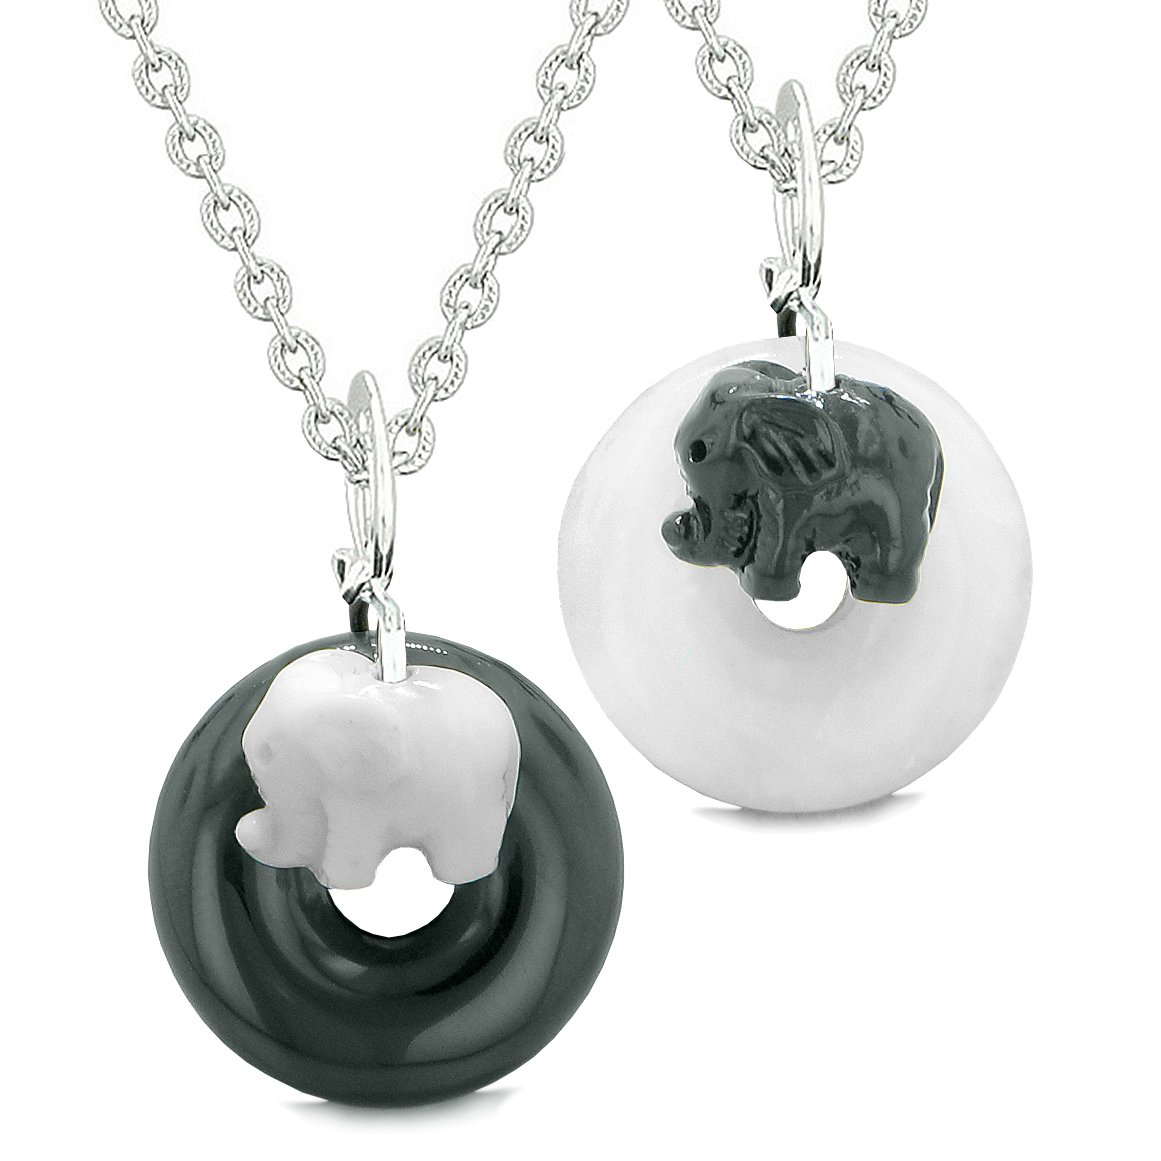 Lucky Elephant Good Luck Charms Love Couples and Best Friends Jewelry Amulets and Talismans